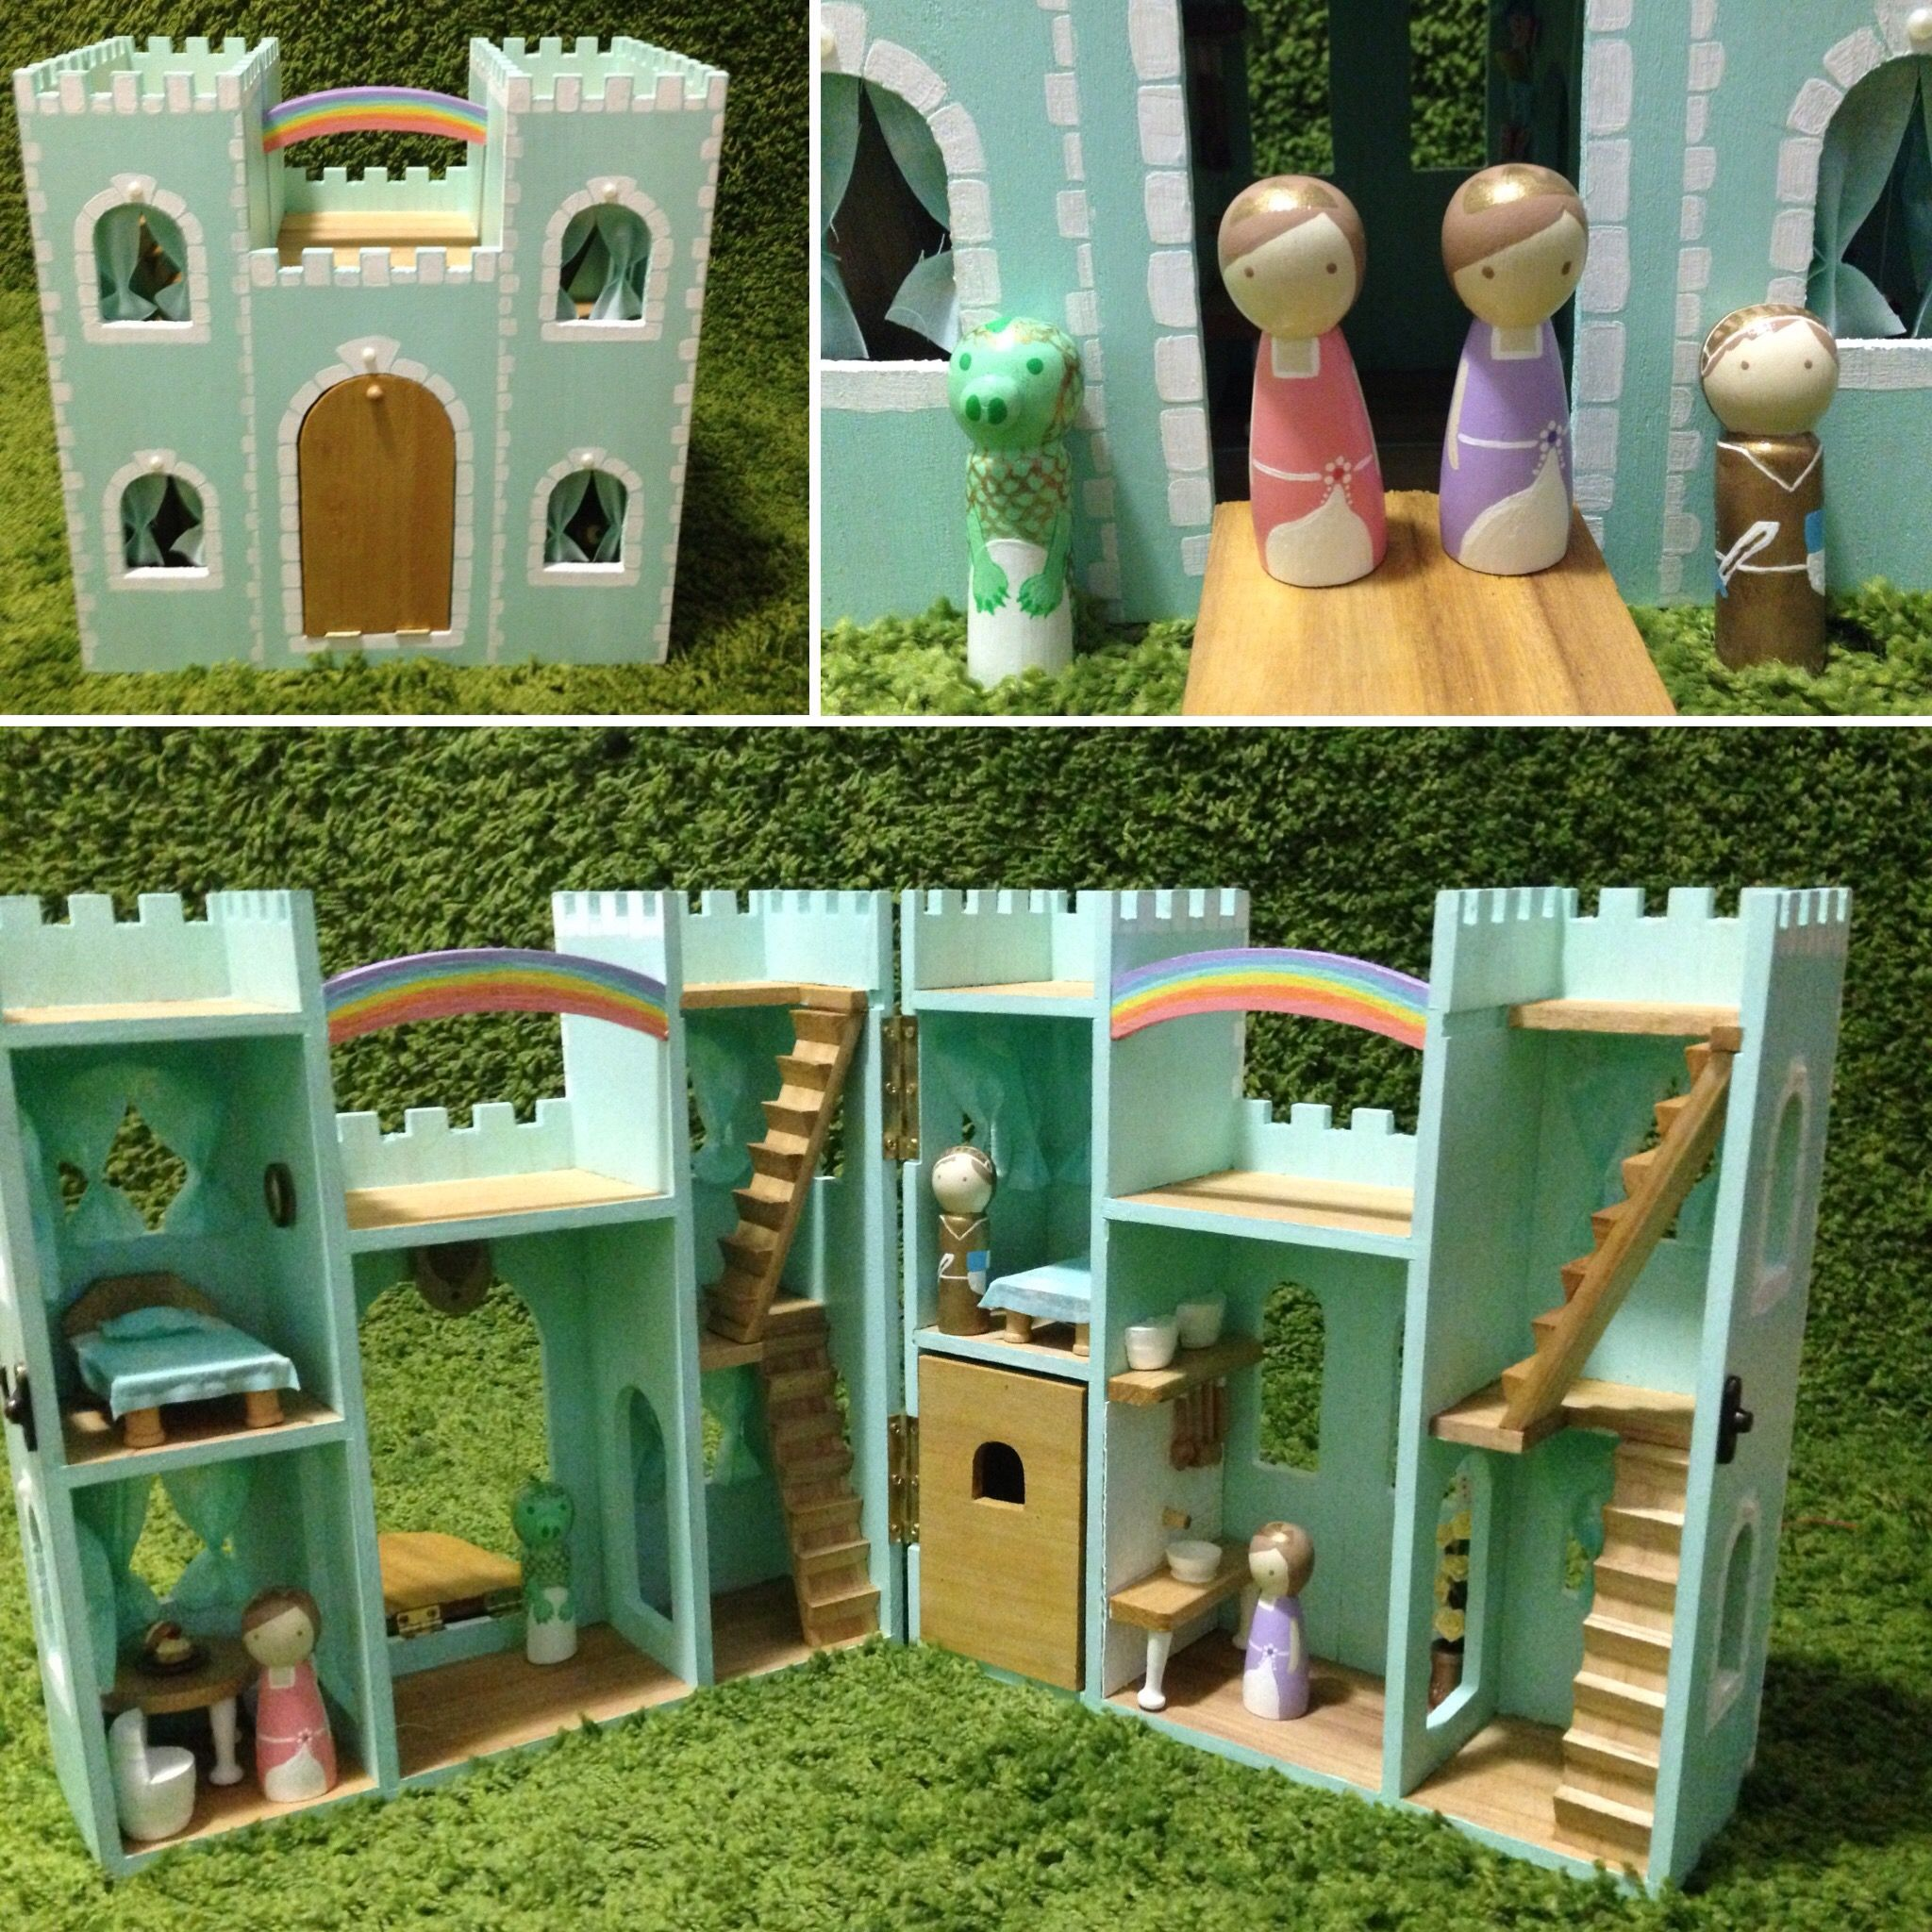 Or sleeping bags clothes pegs optional fairy lights optional - Finished My Dollhouse Castle And Peg People